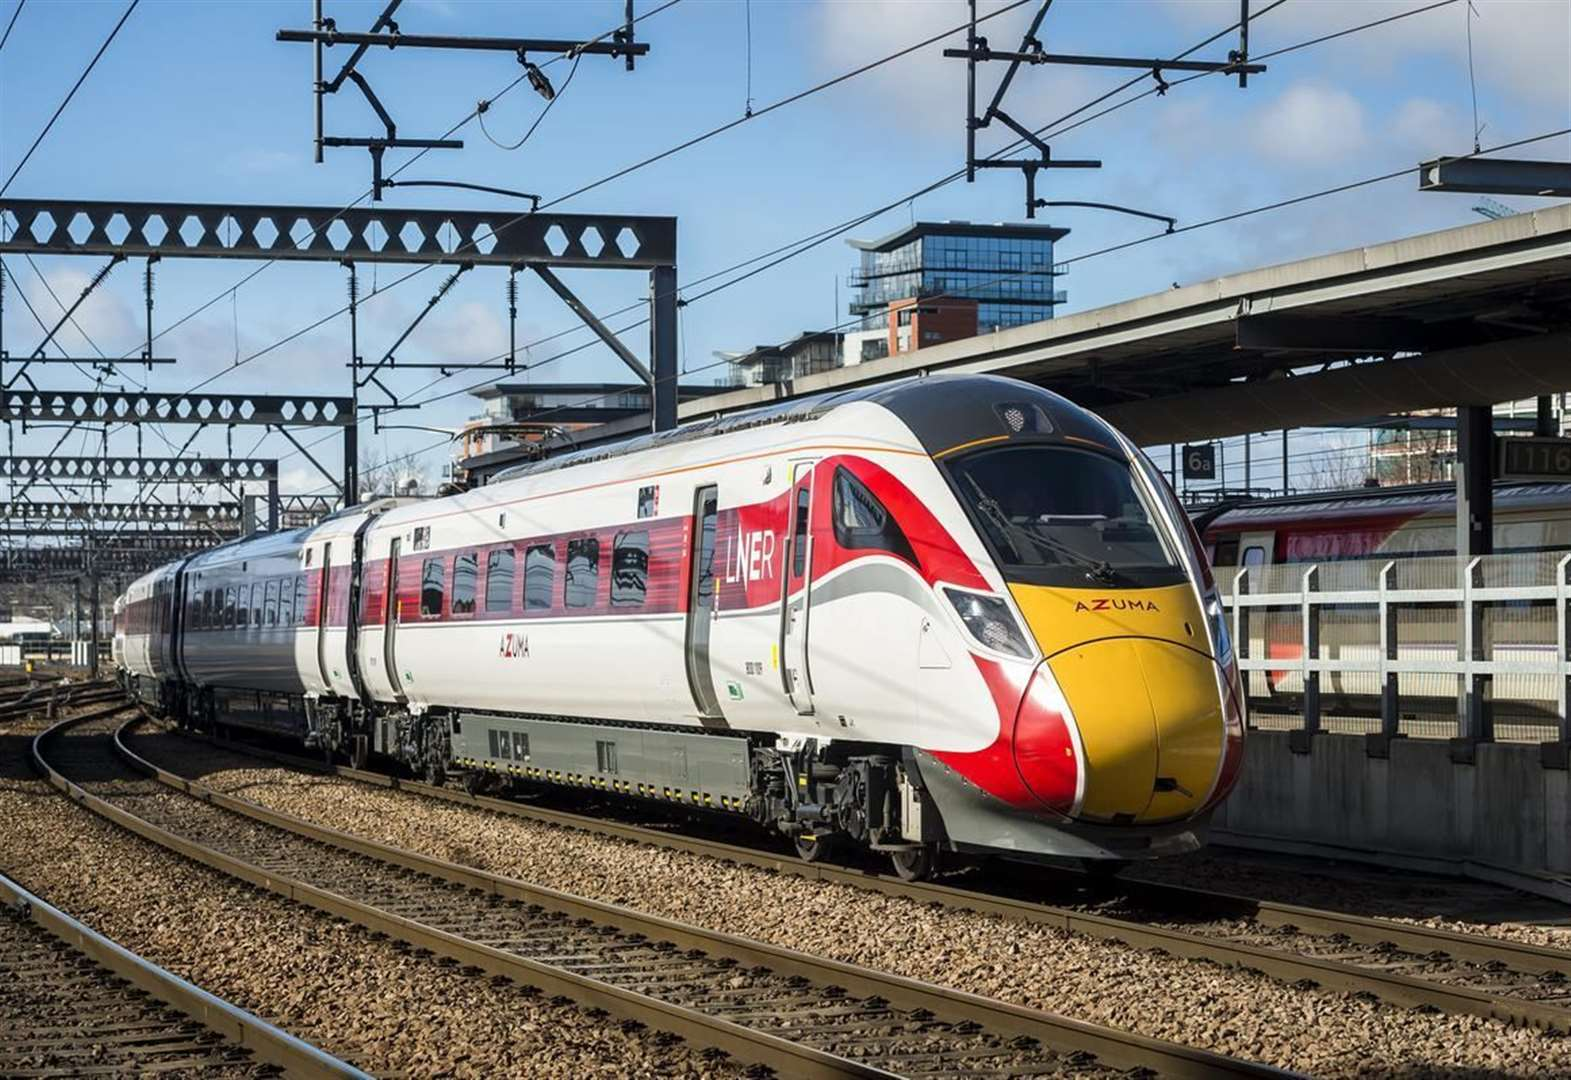 LNER to run new direct train services from Lincoln and London